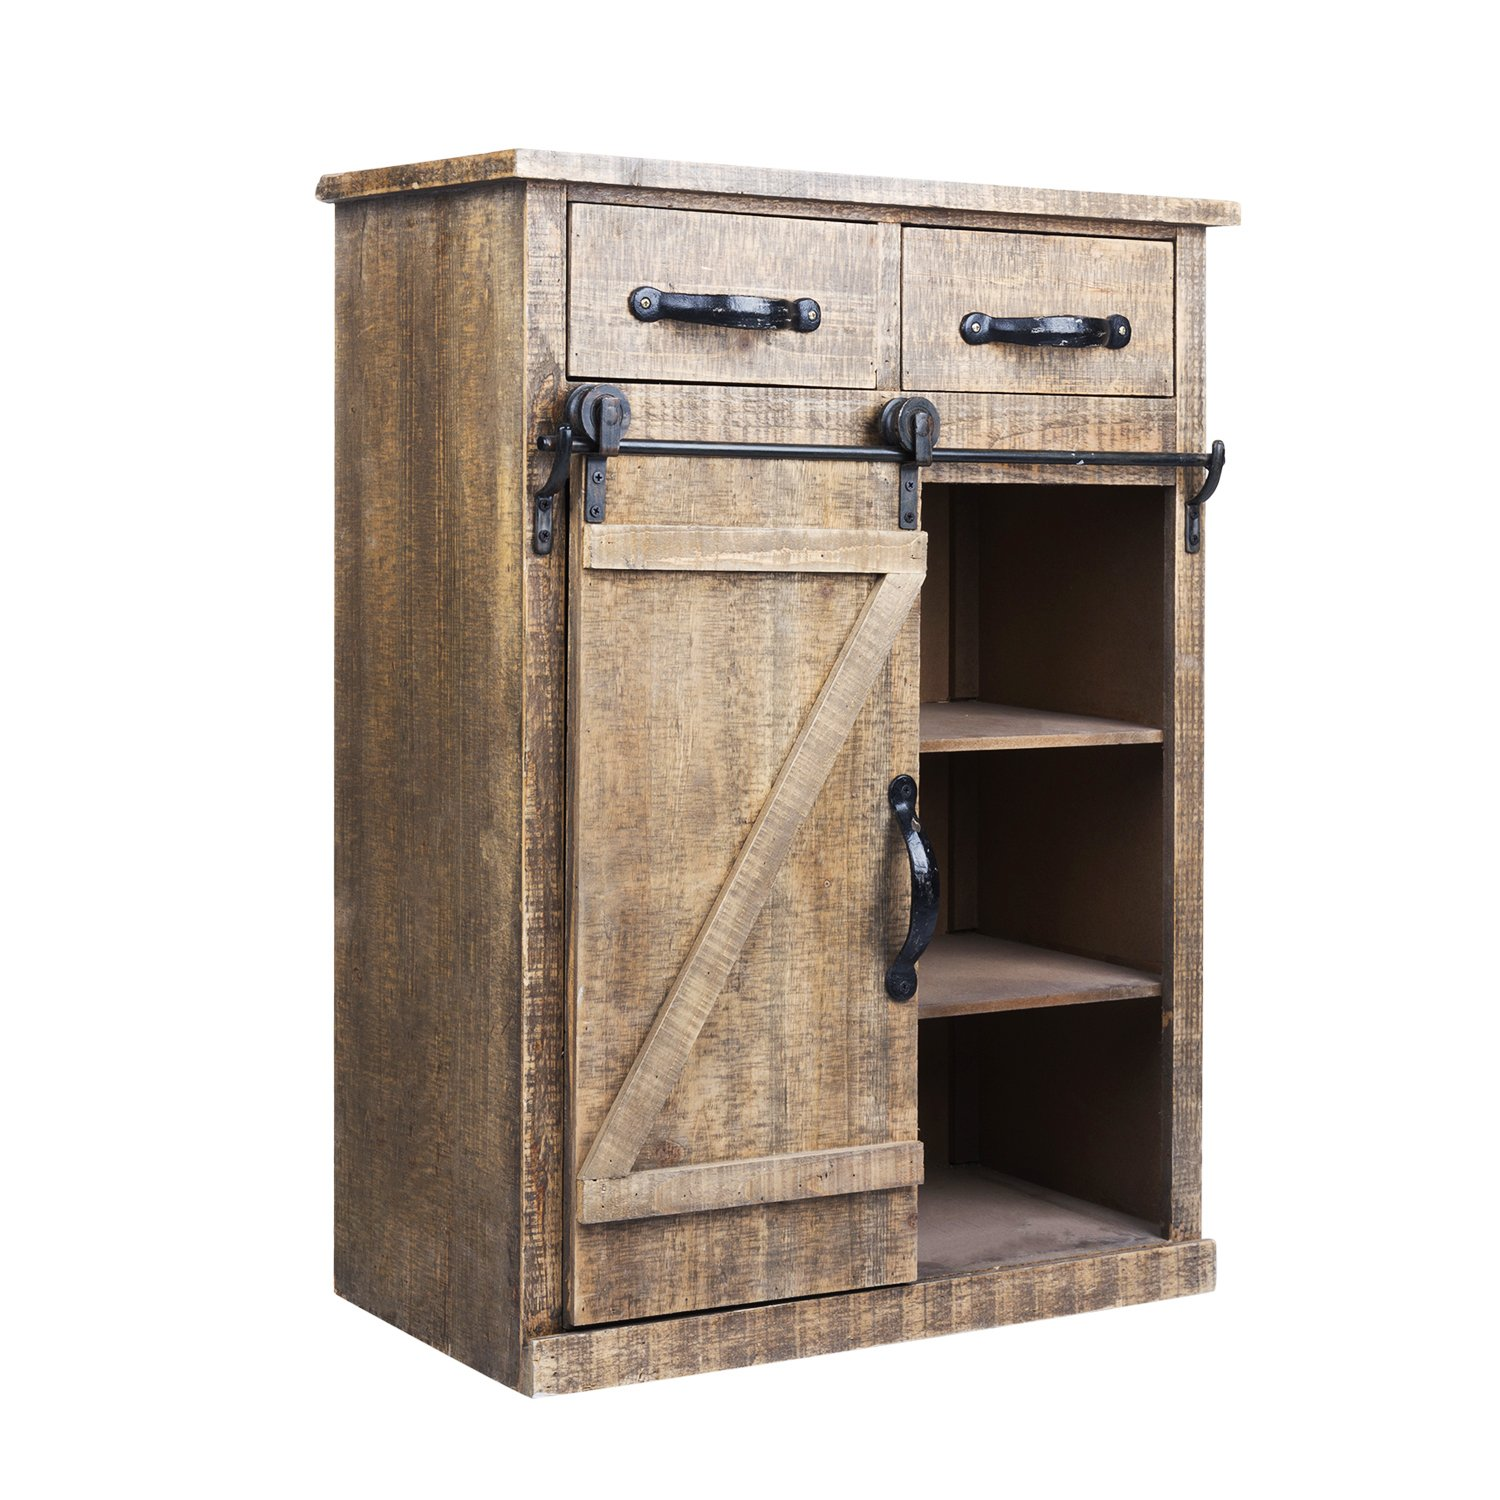 rustic barn door wood end table console accent with drawers and doors cabinet farmhouse storage country vintage furniture kitchen dining twin sleeper sofa brown resin wicker side